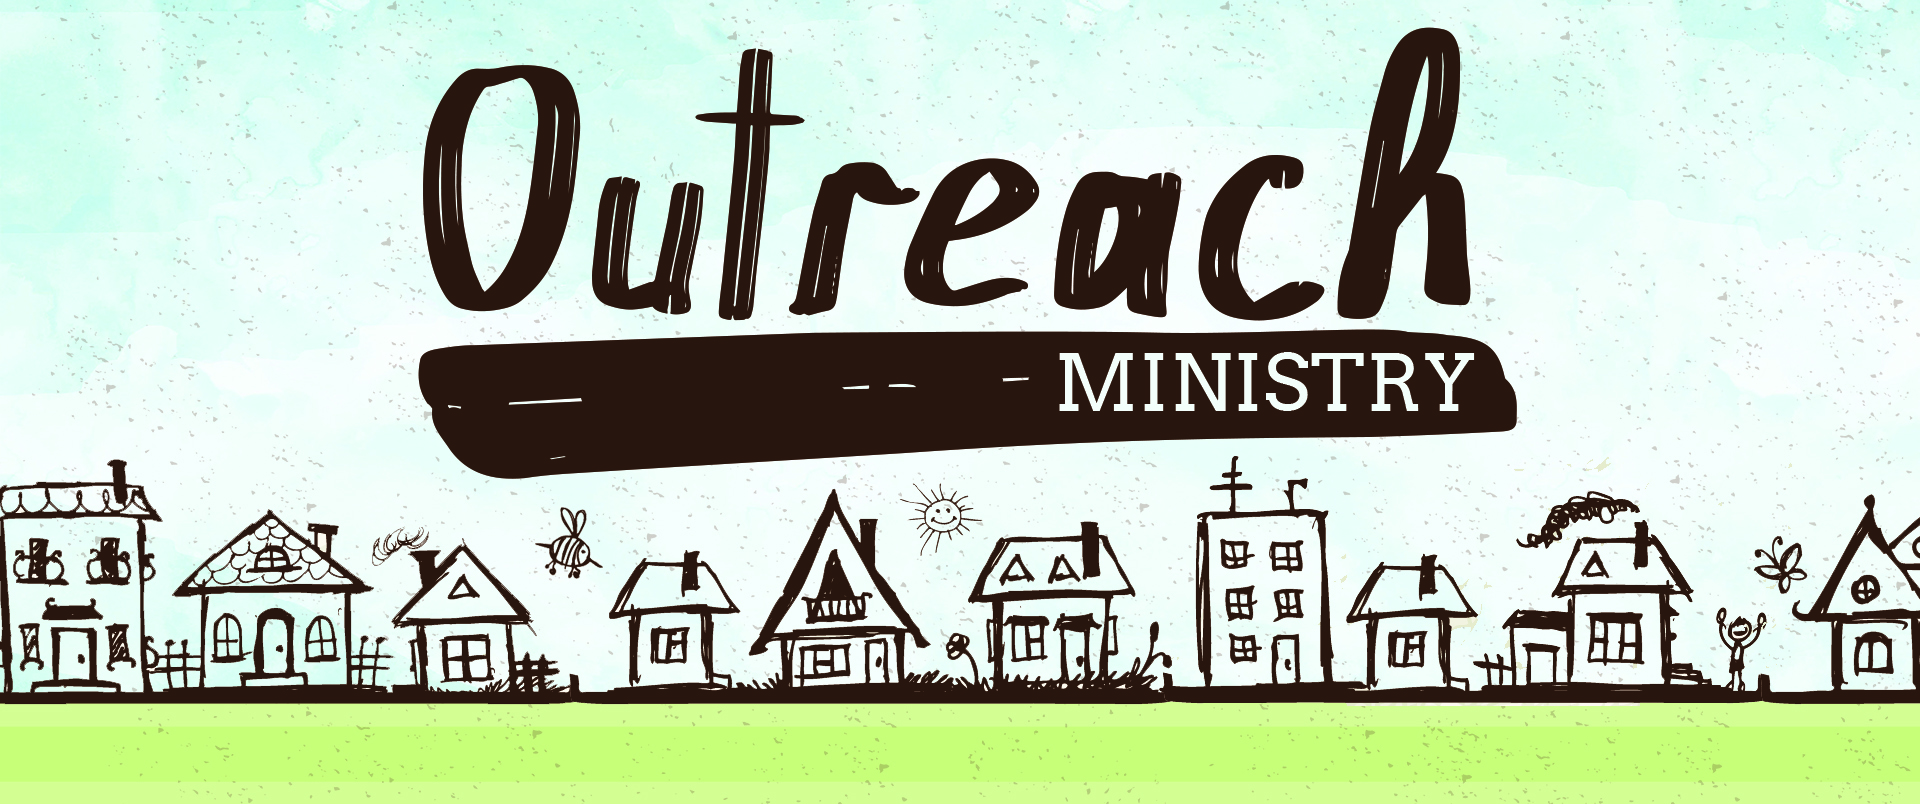 OUTREACH HEADER IMAGE.jpg